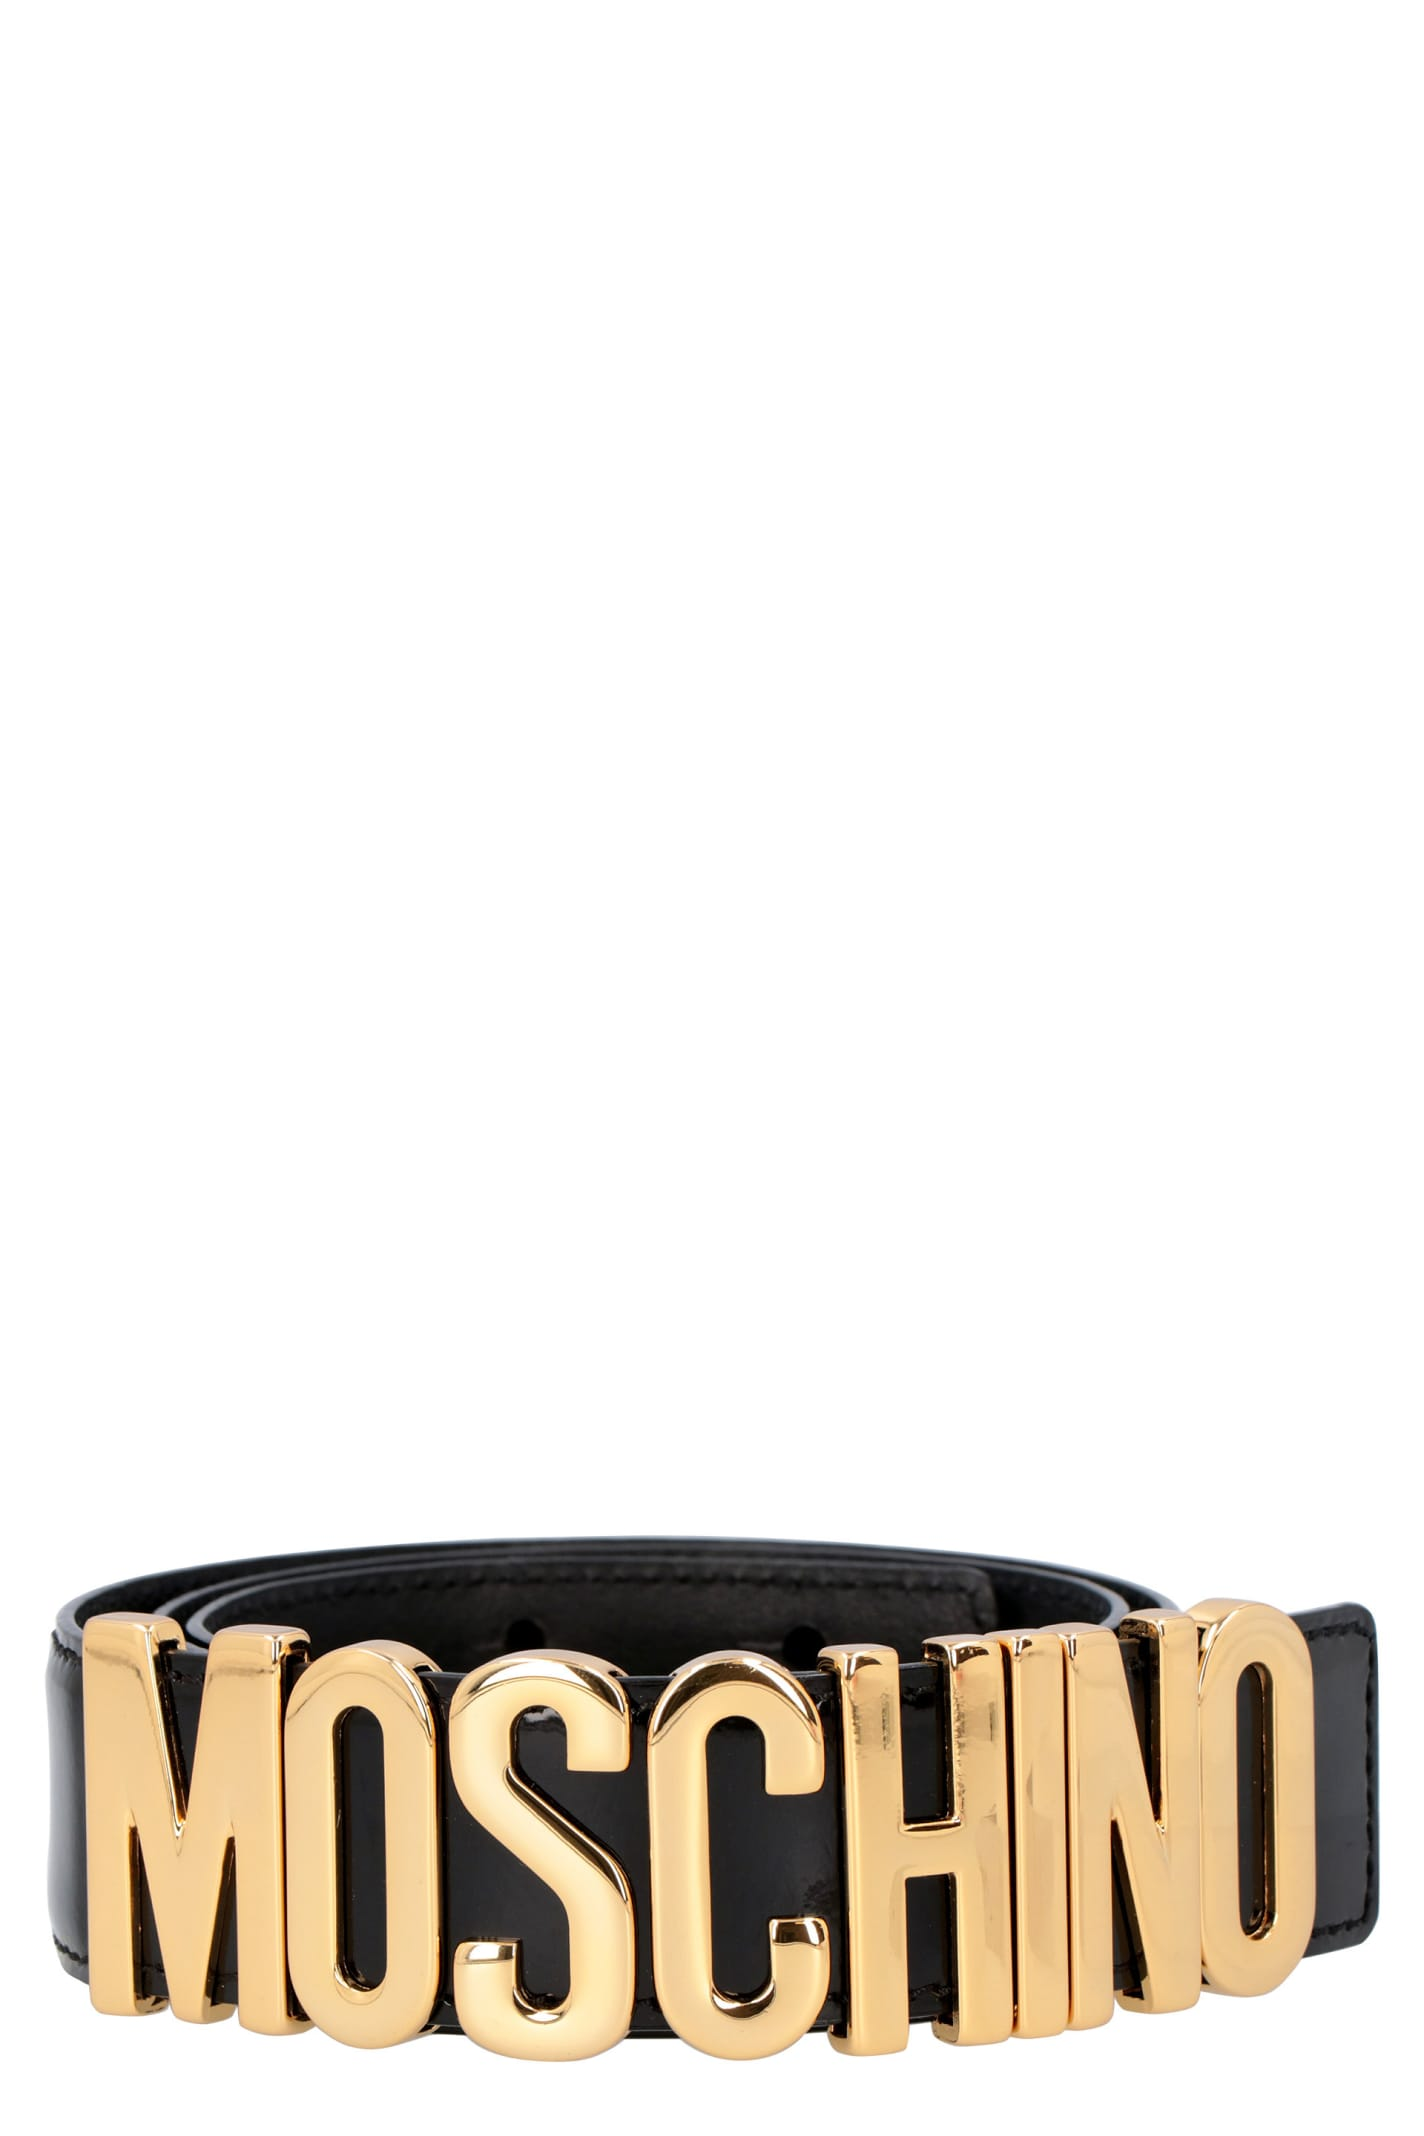 Moschino LOGO BUCKLE LEATHER BELT